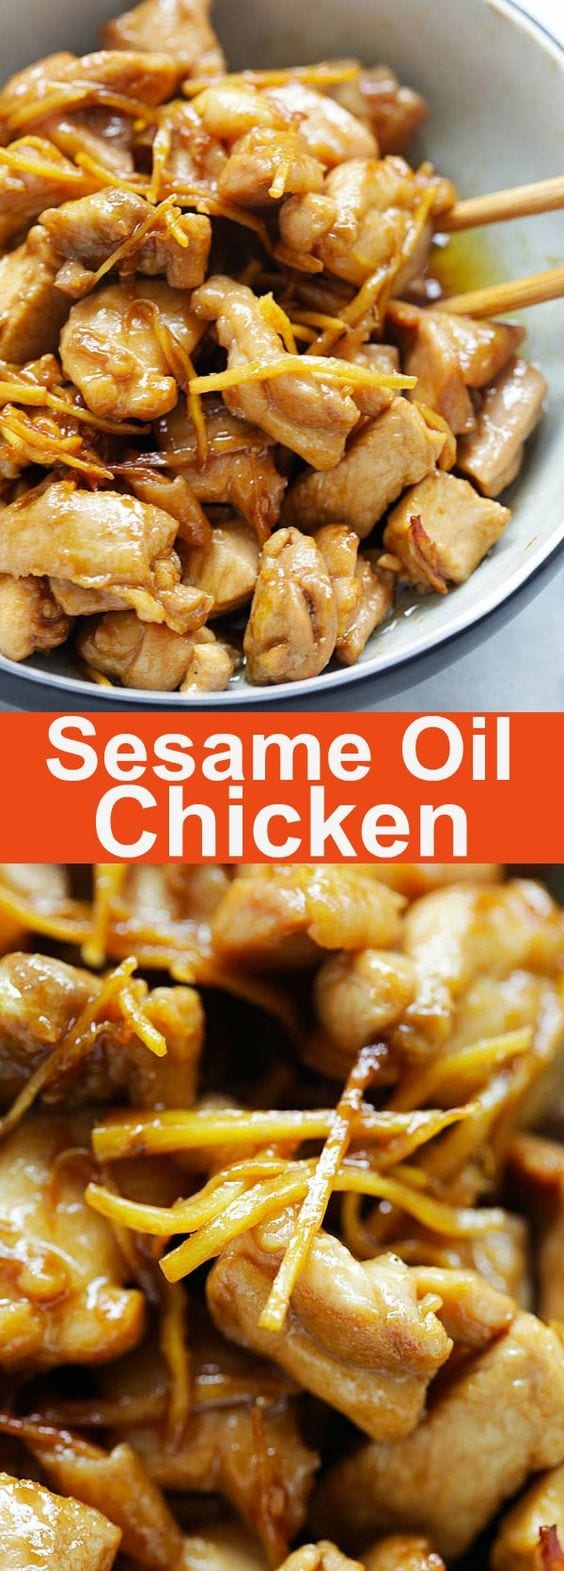 Sesame Oil Chicken (麻油鸡) recipe - This a really homey and humble chicken dish that is both delicious and easy to make. It takes only a few ingredients, and the great taste complements steamed white rice.   rasamalaysia.com